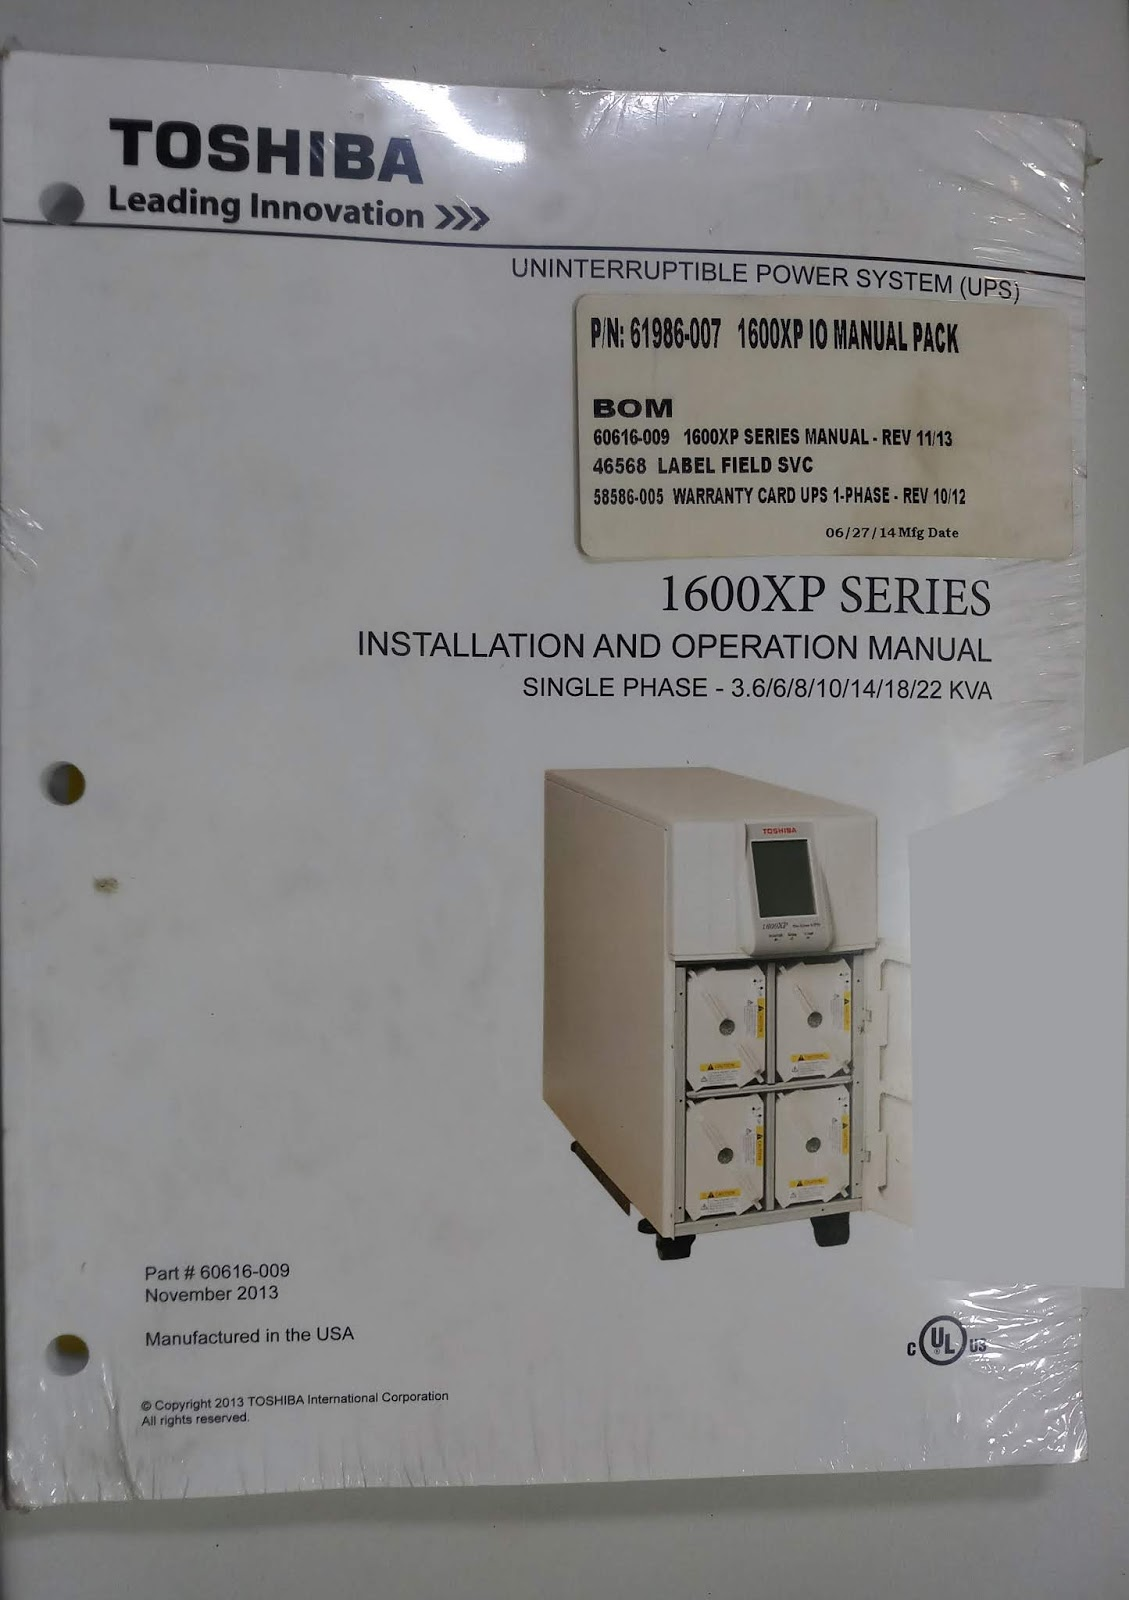 Toshiba 1600 Xp Wiring Diagram | Wiring Diagram Centre on diode diagram, troubleshooting diagram, service diagram, steel diagram, power supply diagram, speaker driver diagram, field lights diagram, field wire, field guide norfolk, installation diagram, junction box diagram, control diagram, port diagram, lighting diagram, field maintenance, manufacturing diagram, assembly diagram, battery diagram, relative humidity diagram, field tools,